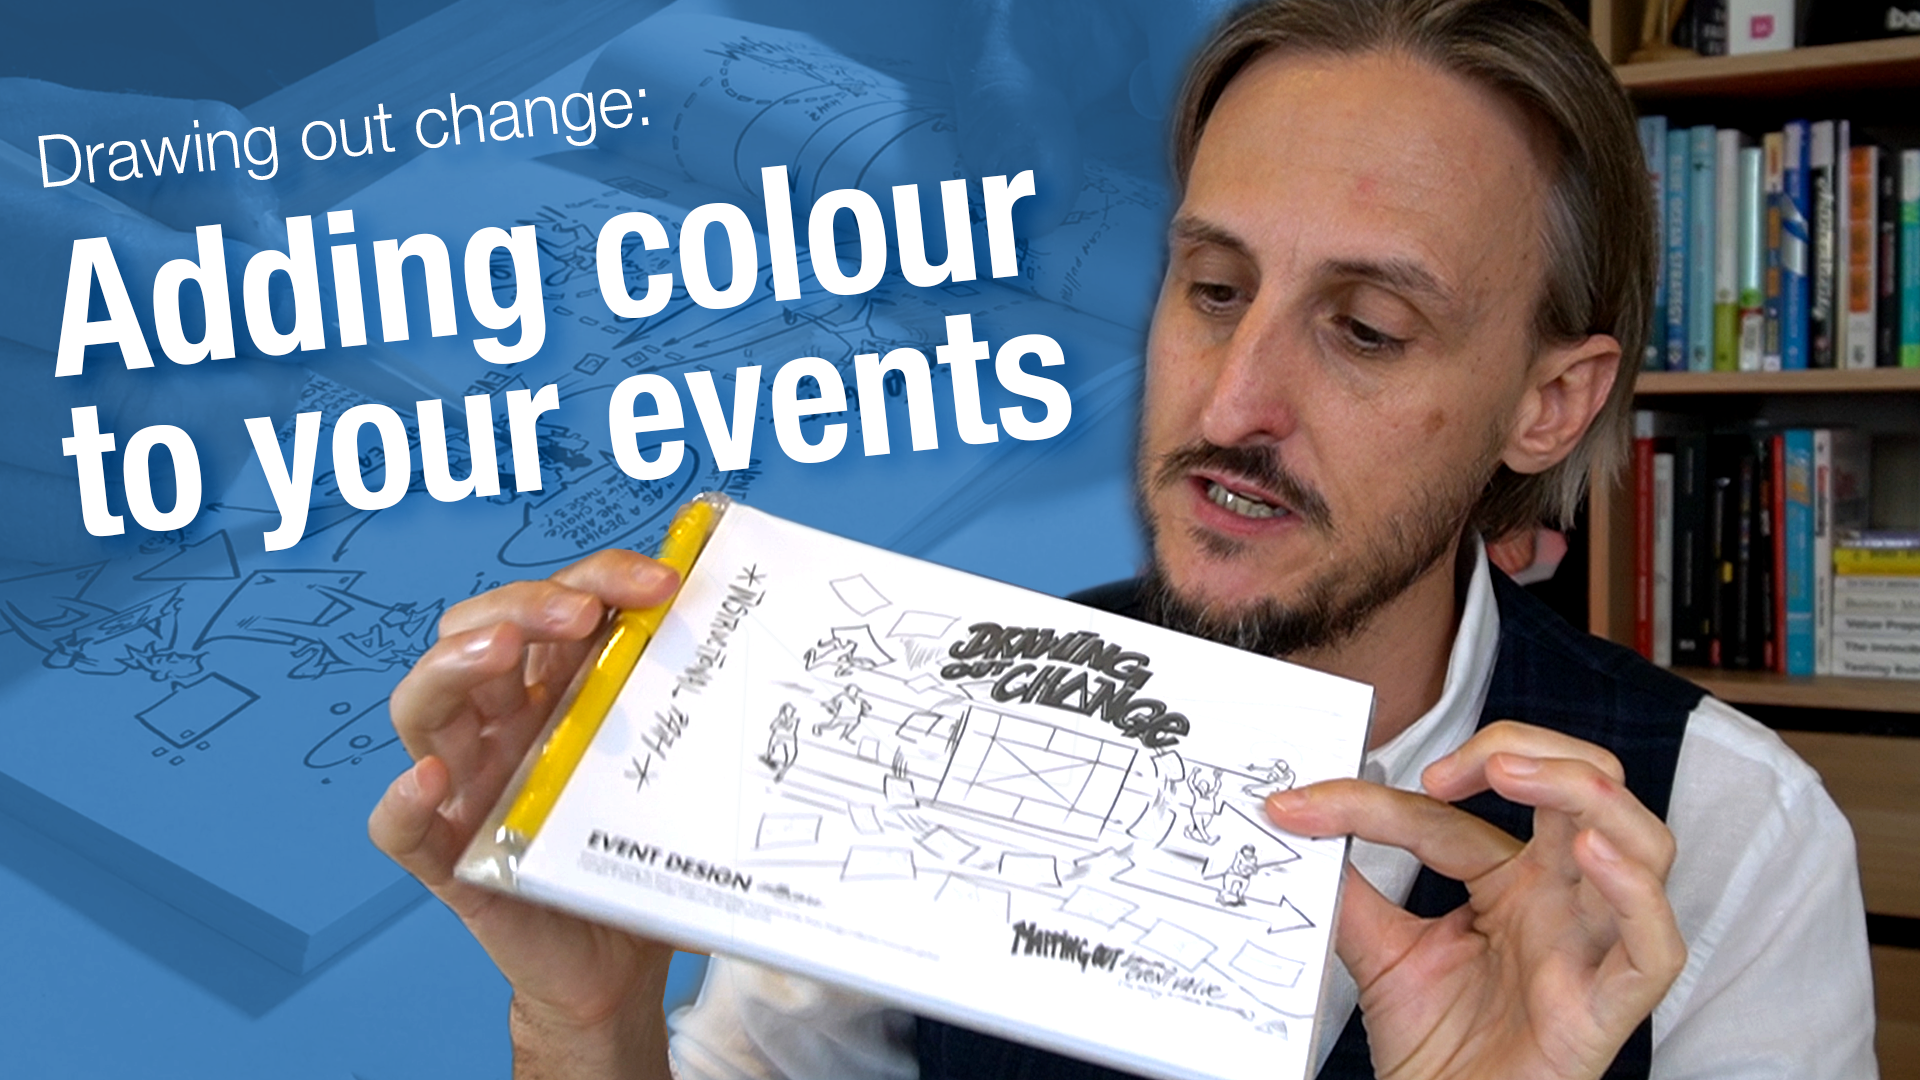 """Adding 'colour' to your event [strategy] with the """"Drawing Out Change"""" visual design guide"""